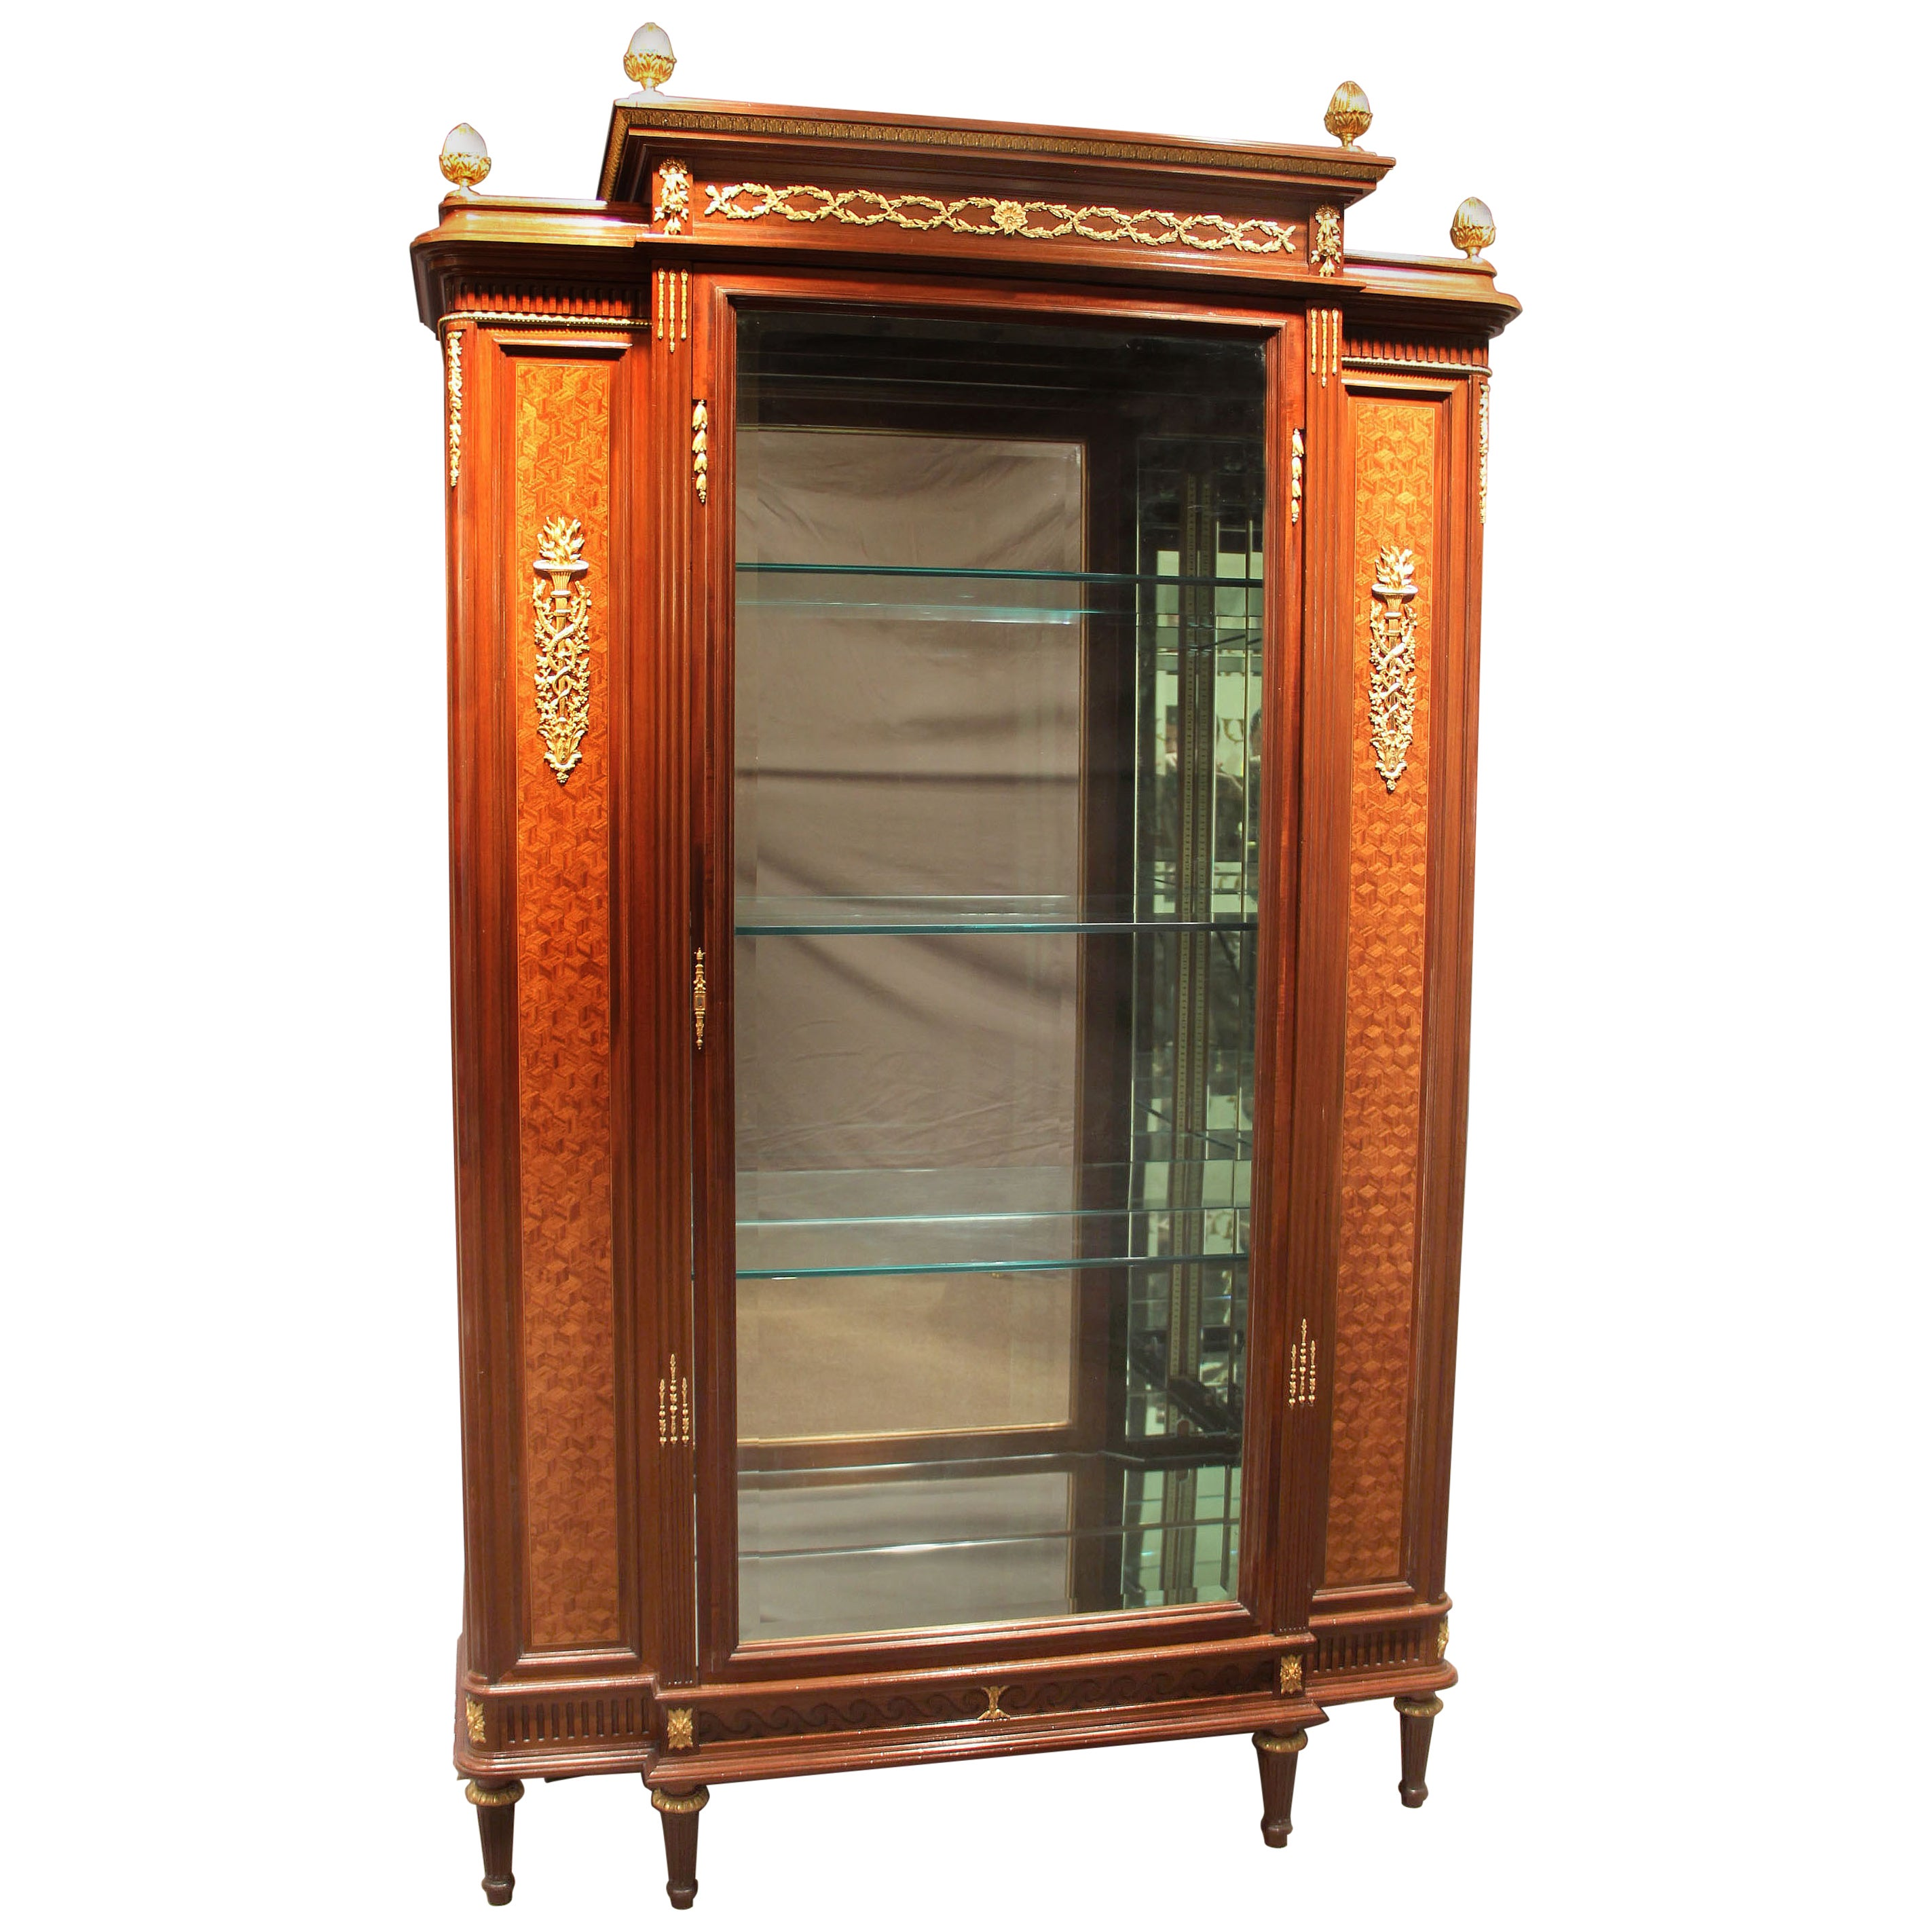 Large and Fine Early 20th Century Gilt Bronze-Mounted Vitrine by François Linke